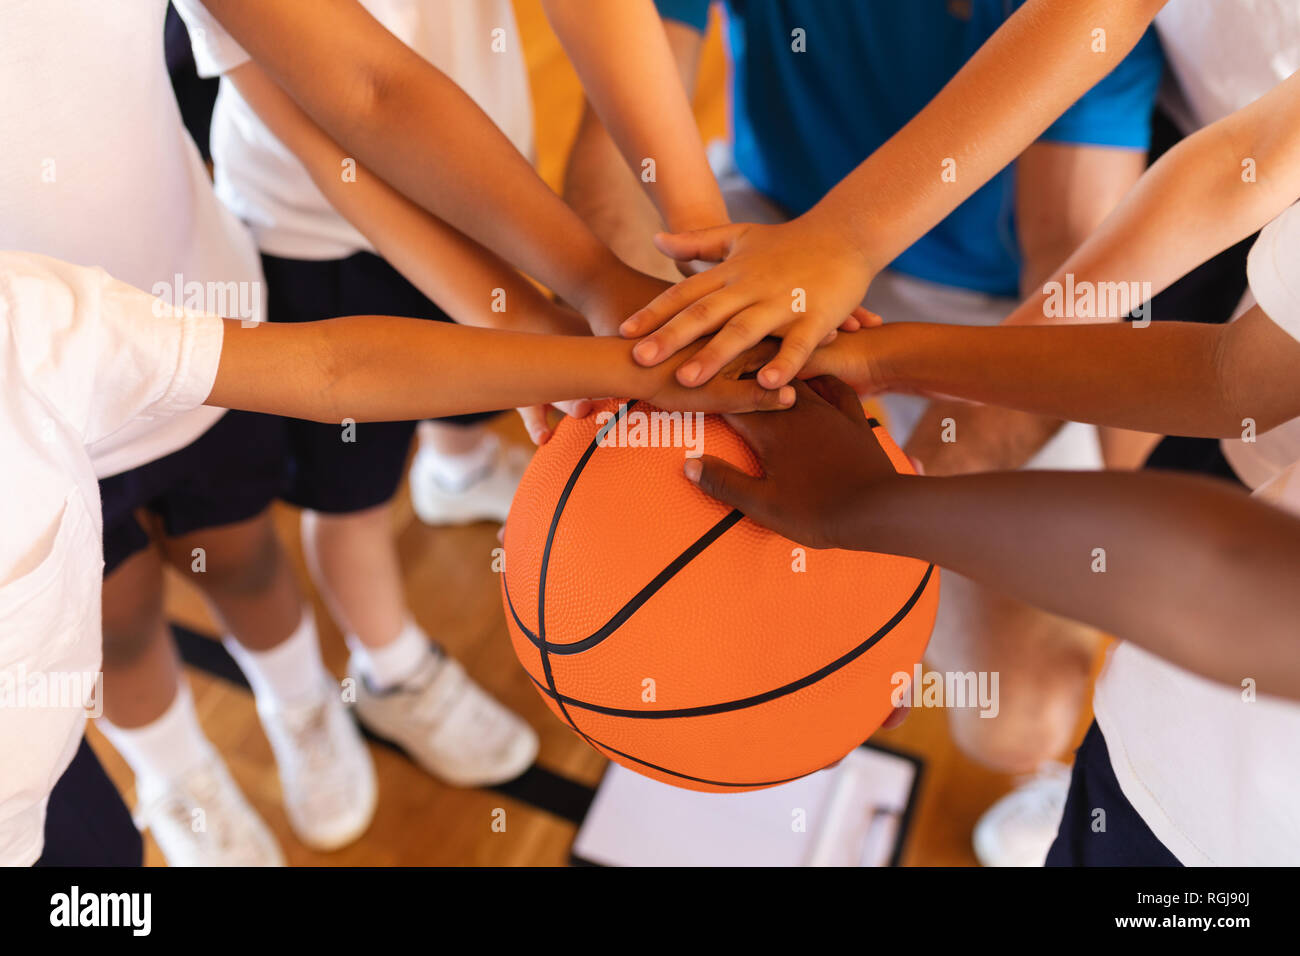 Close-up of Schoolkids forming hand stack on basketball at basketball court in school Stock Photo